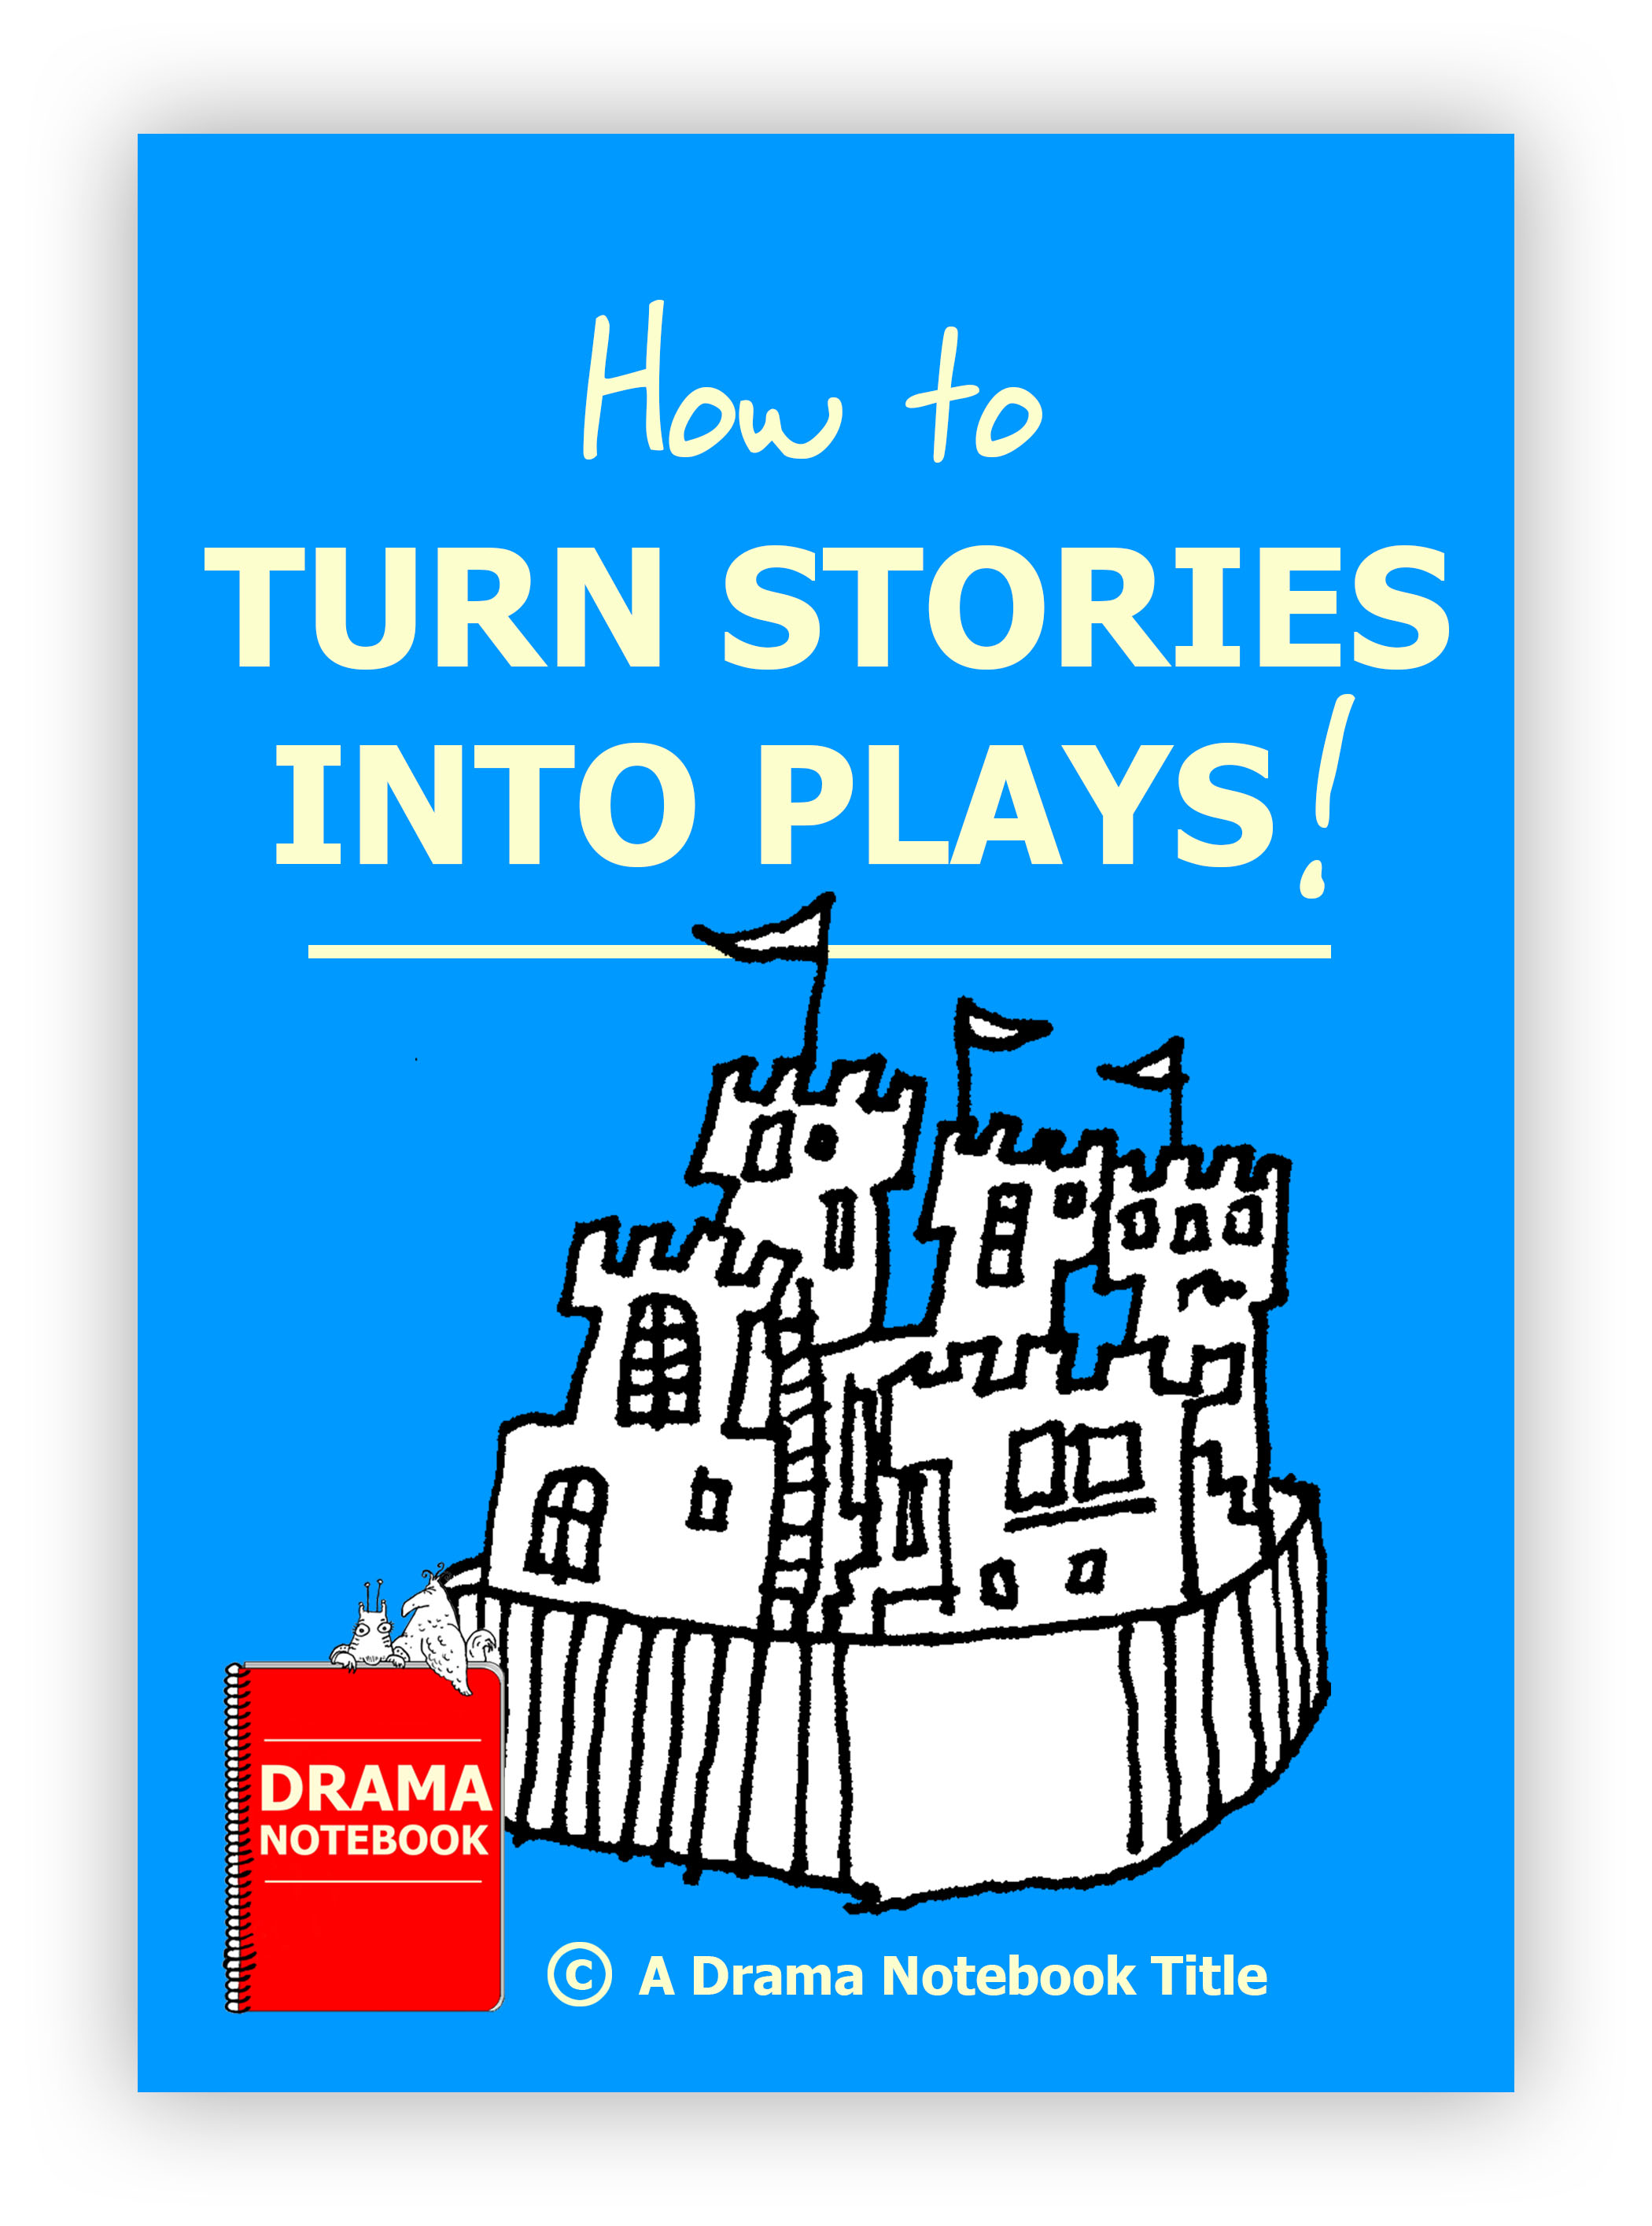 How to Turn Stories into Plays for Drama Class